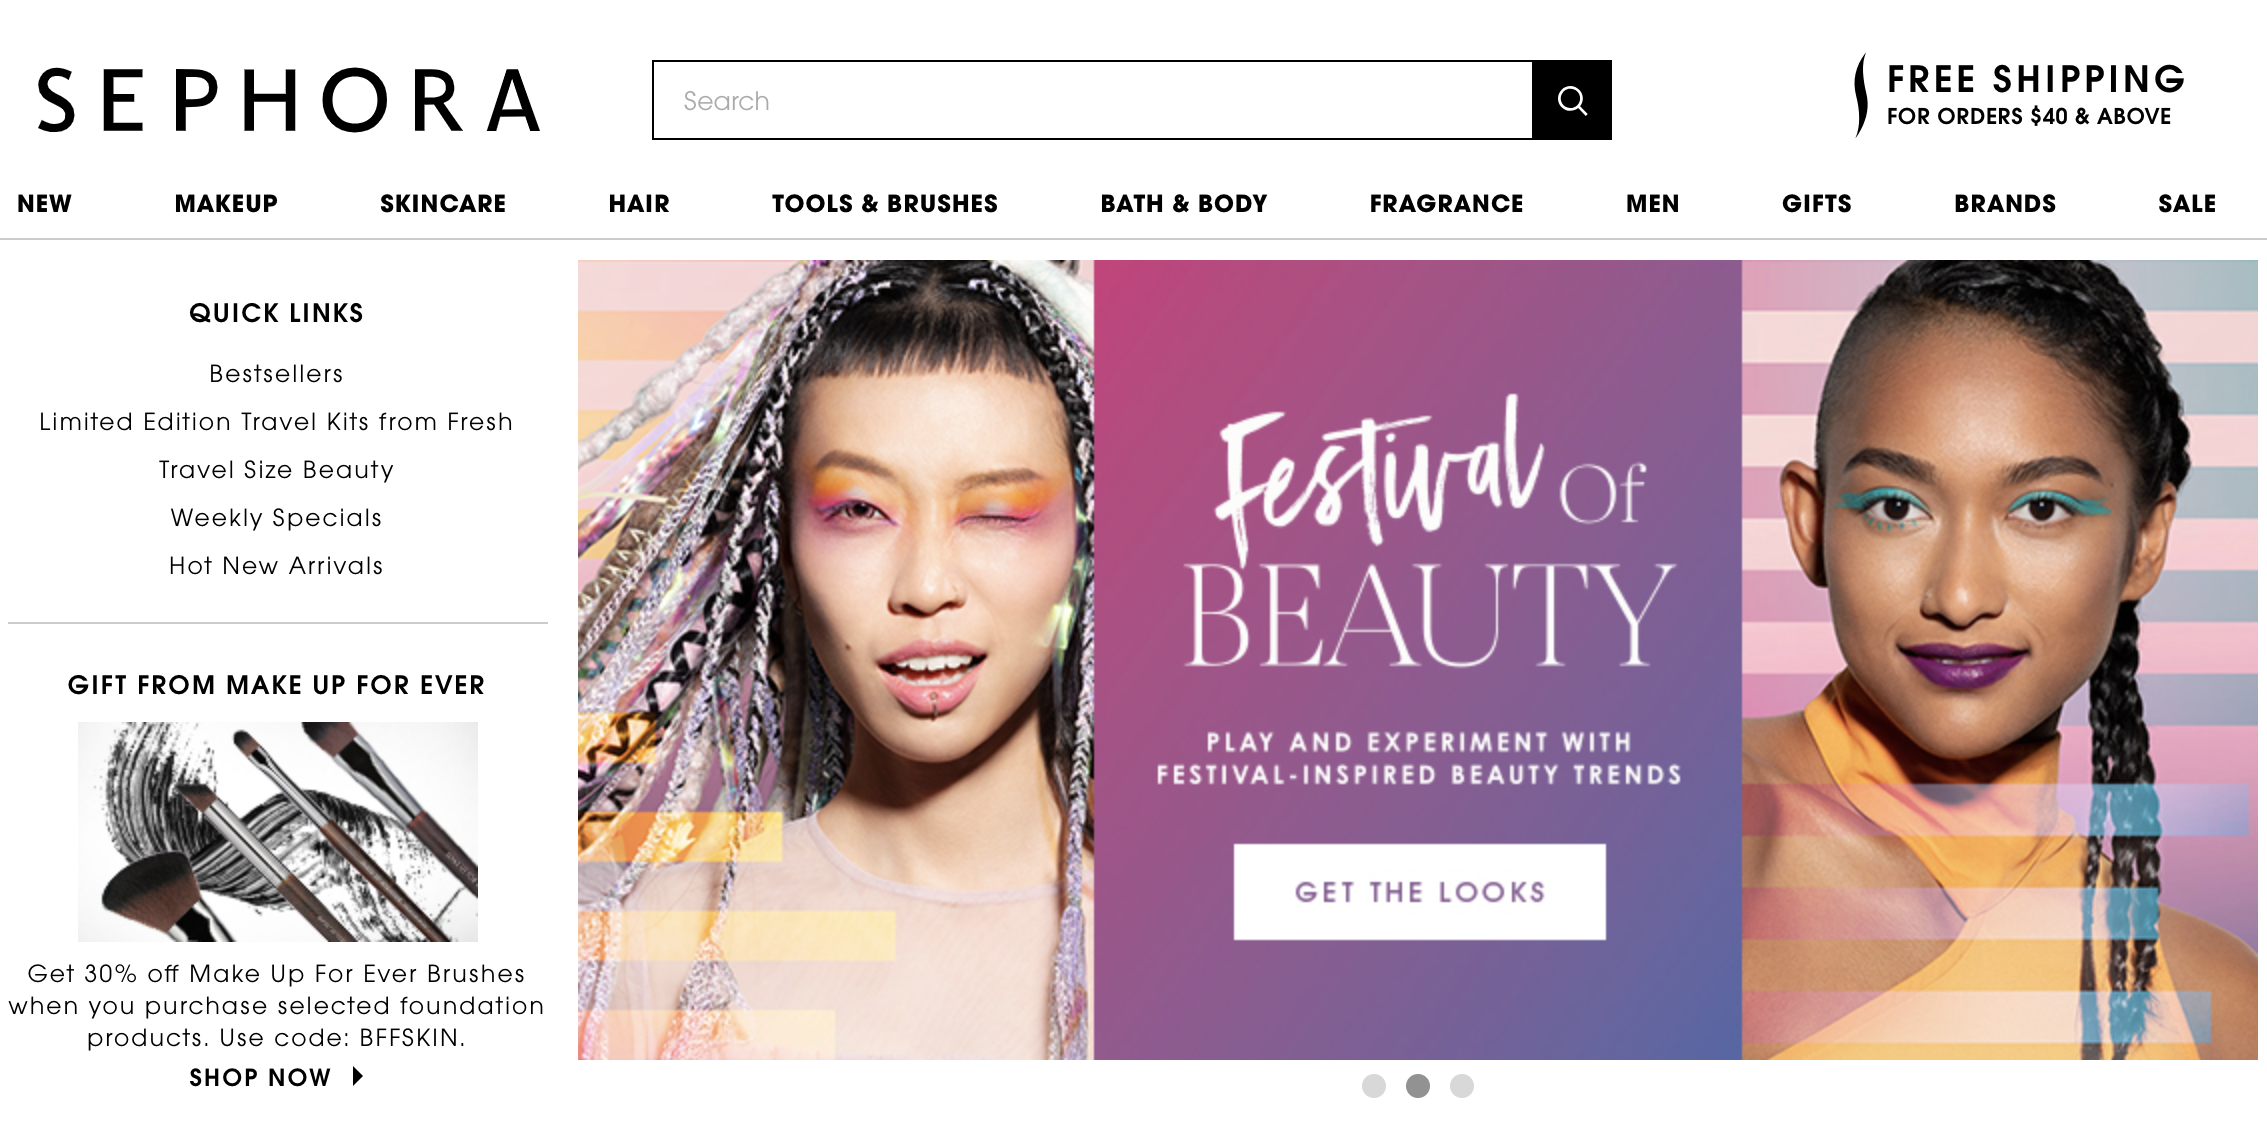 Sephora-festival-of-beauty-website.png